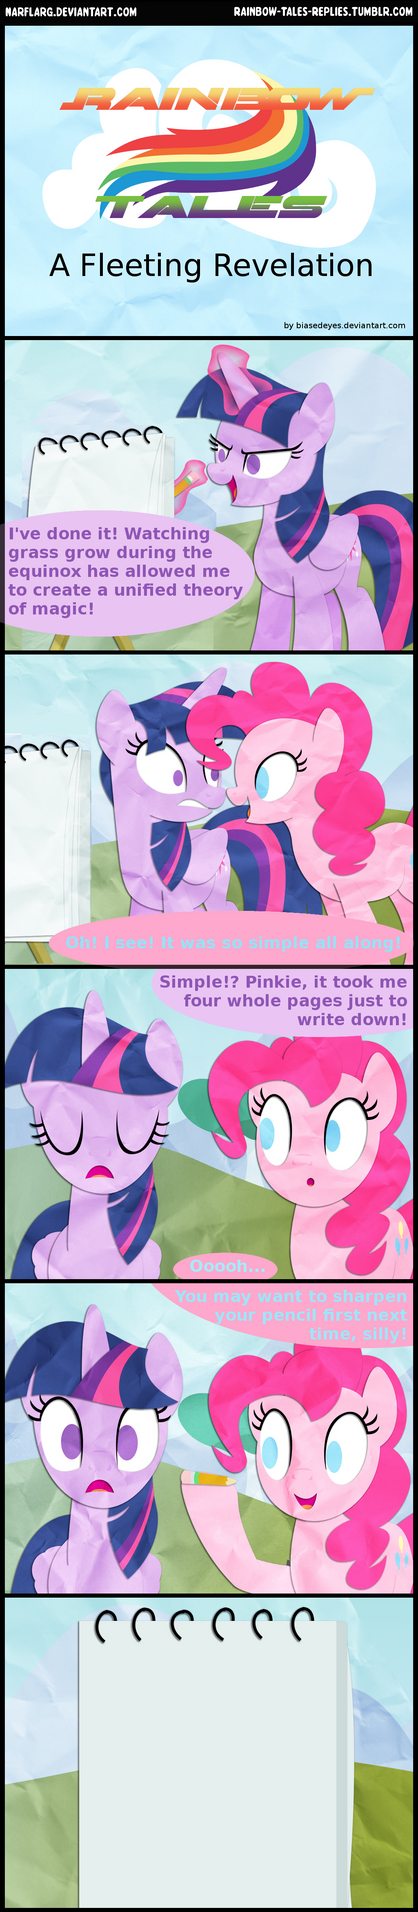 A Fleeting Revelation by biasedeyes